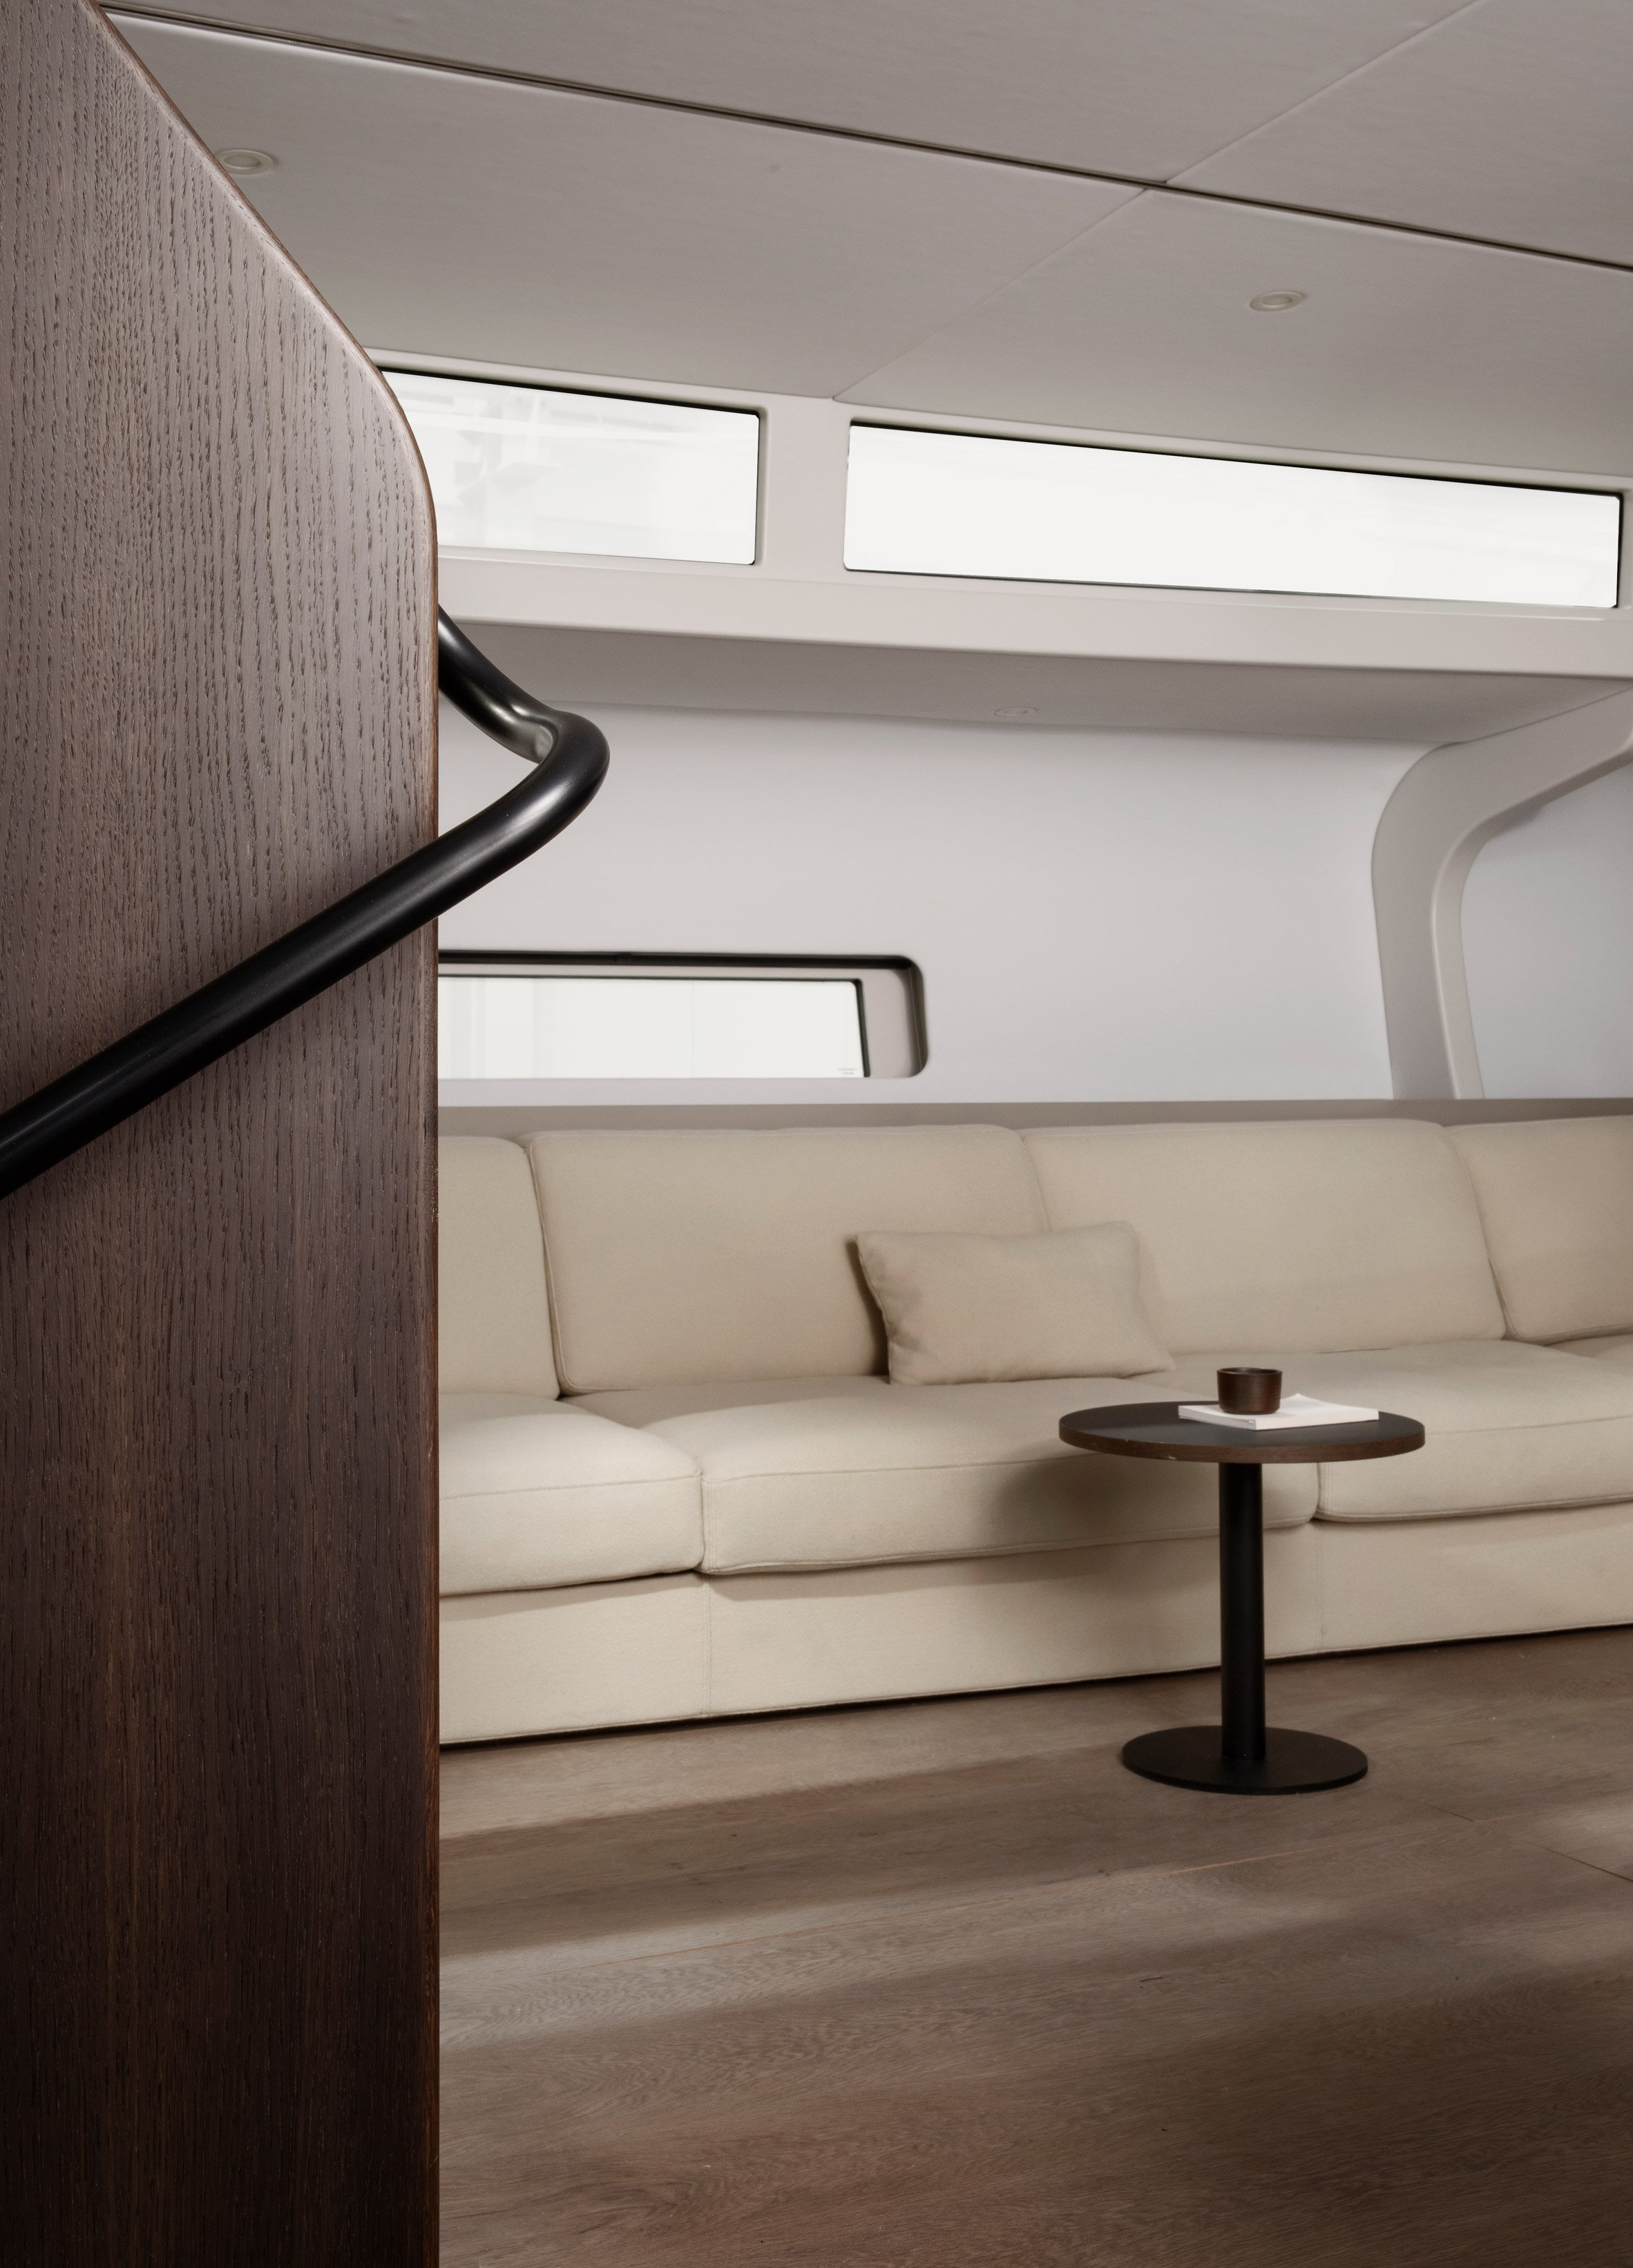 Bella yacht interiors designed by Norm Architects